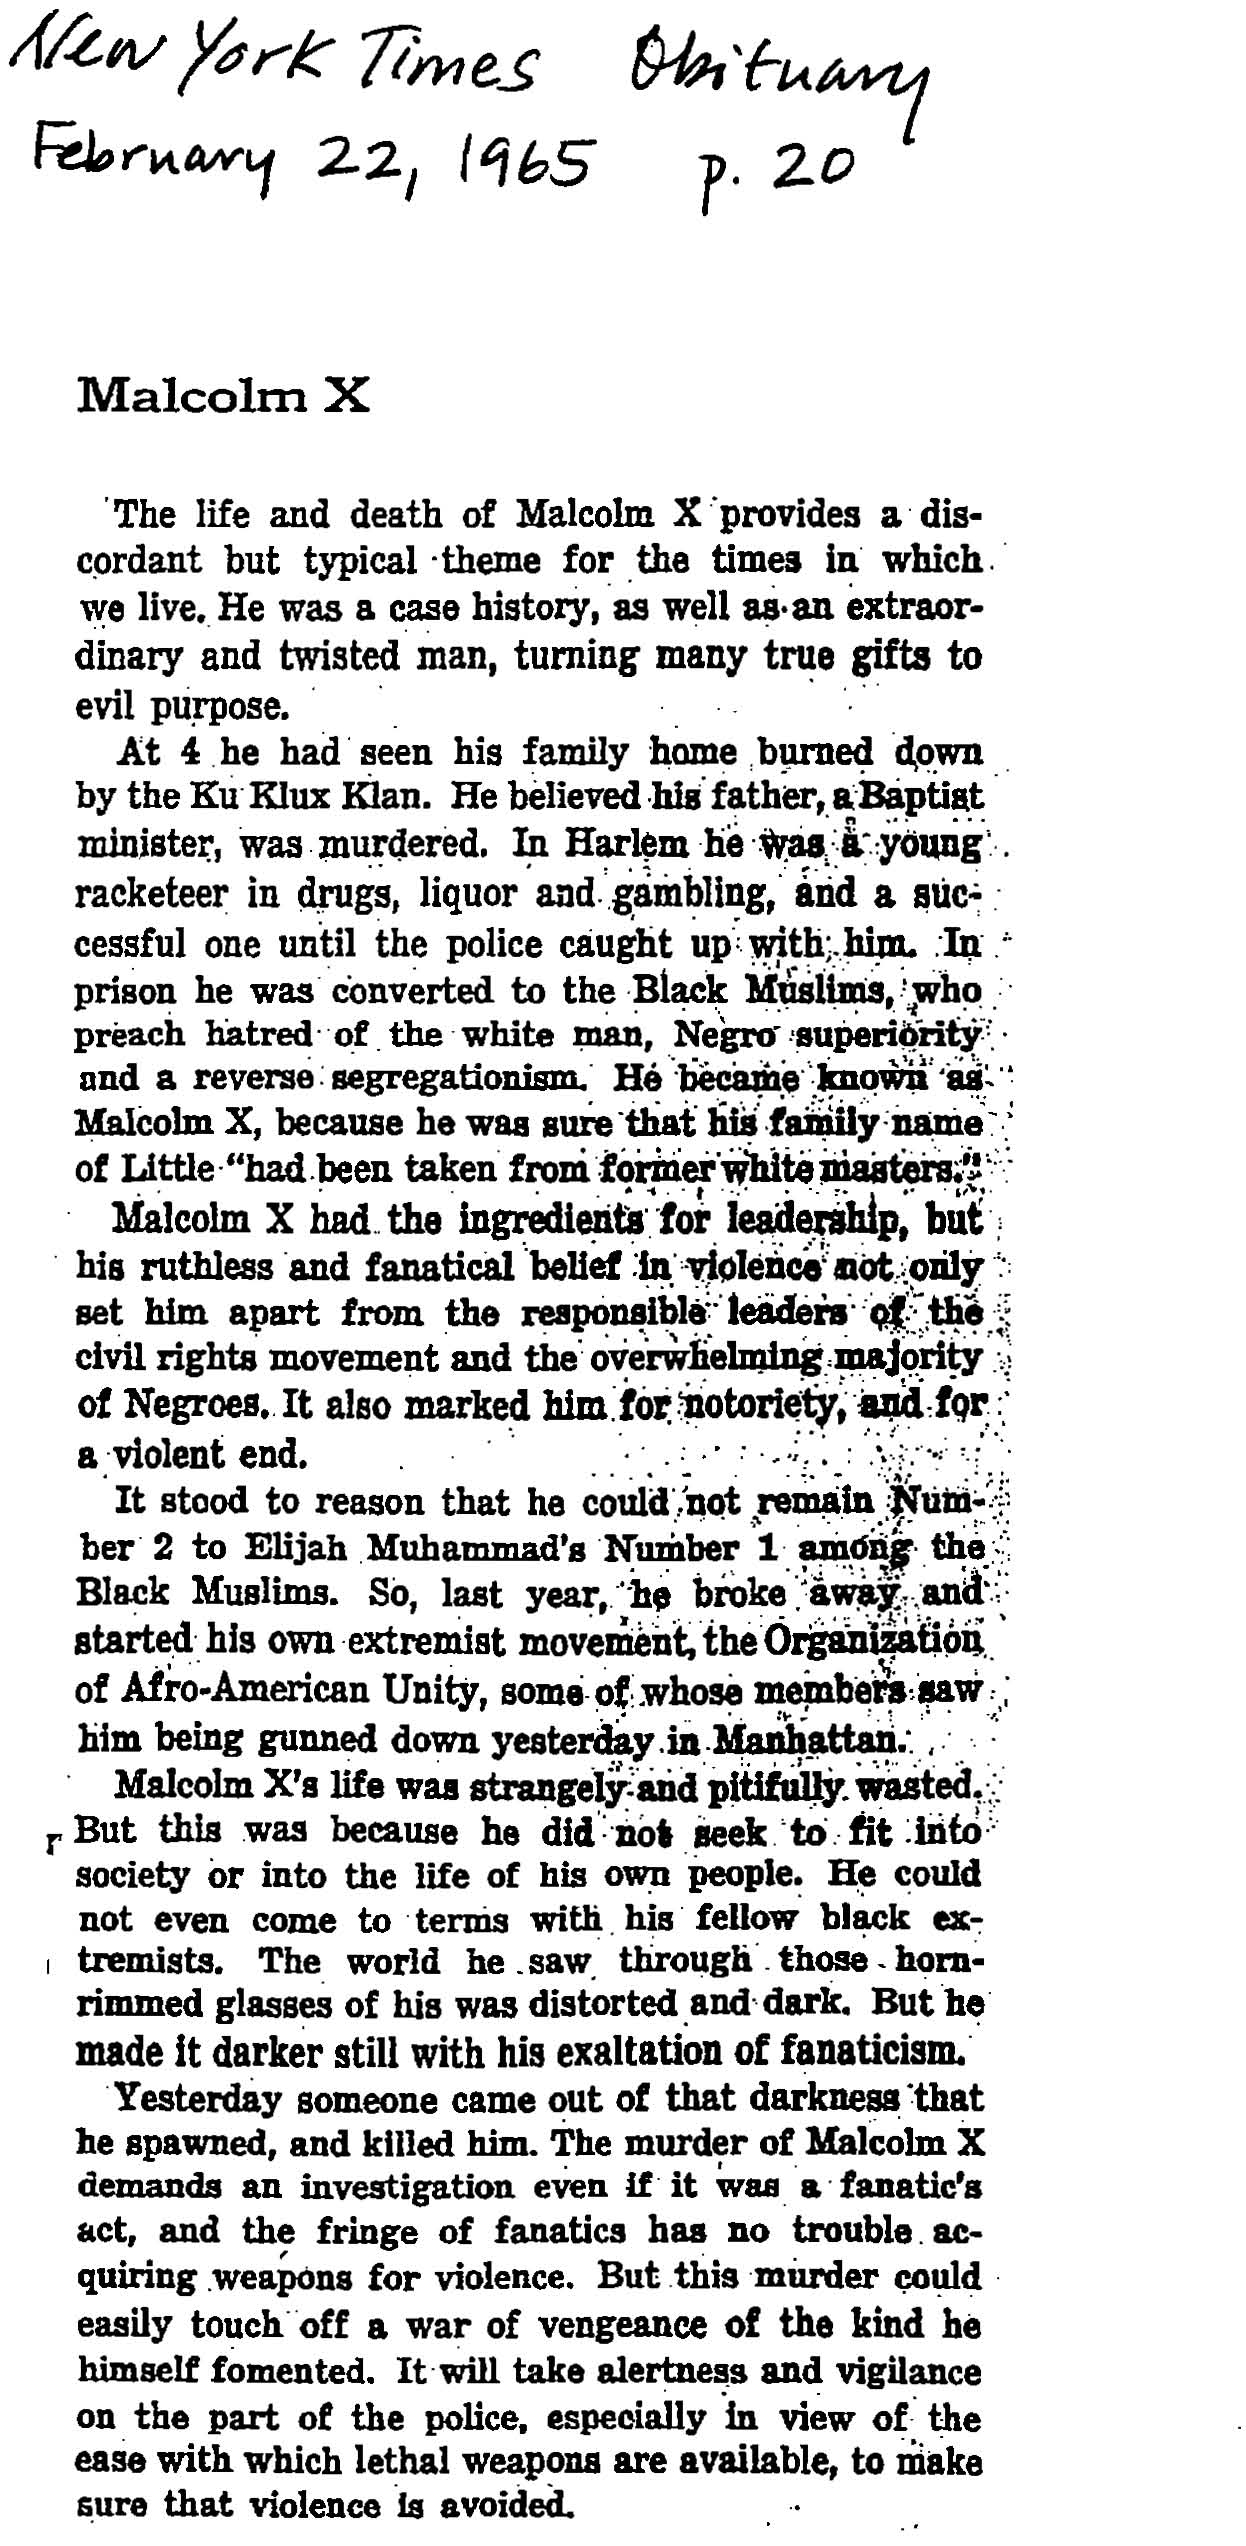 Malcolm X - New York Times editorial, February 22, 1965